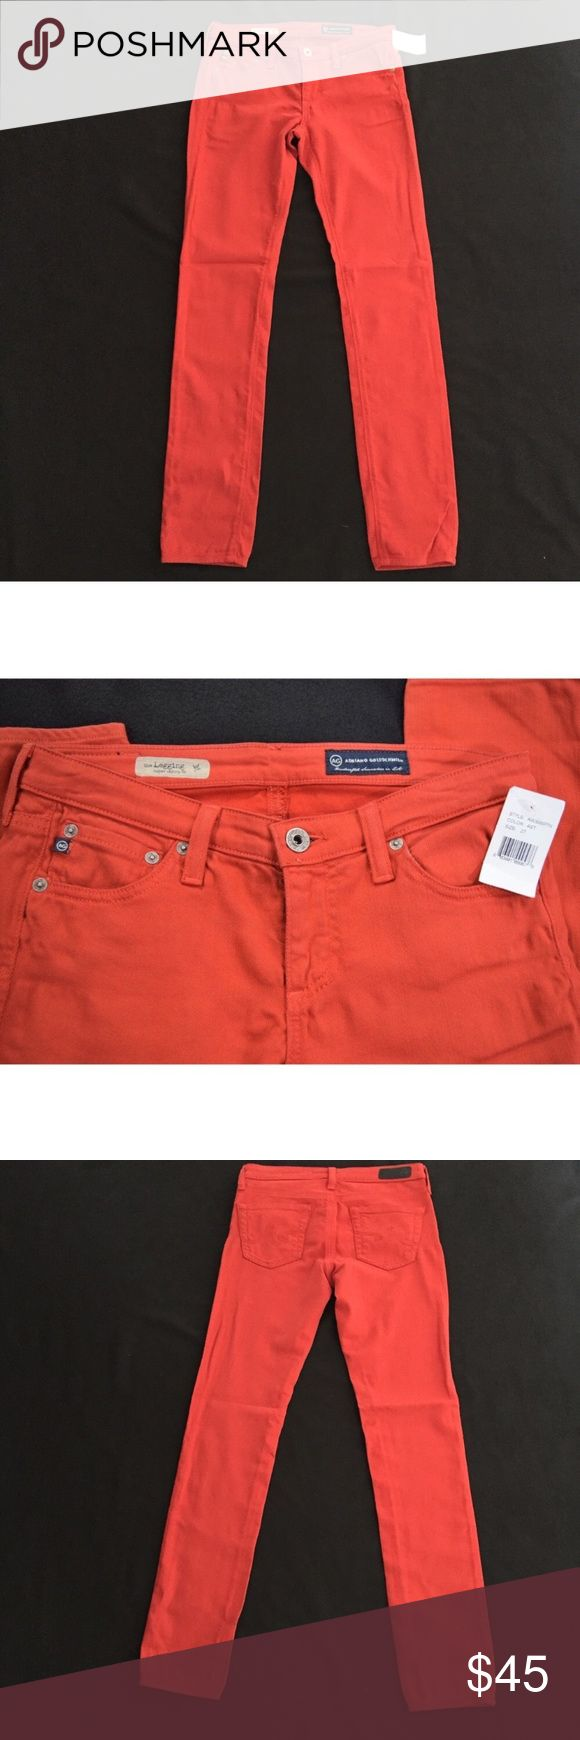 """NWT AG Adriano Goldschmied Orange Skinny Jeans AG Adriano Goldschmied Orange denim🔸The Legging Super Skinny Fit🔸Size 27🔸A beautiful dark orange color🔸Brand new with tags🔸98% cotton🔸Stretchy material🔸Inseam is approx 30.75""""🔸Sample piece🔸Smoke and pet free home AG Adriano Goldschmied Jeans Skinny"""